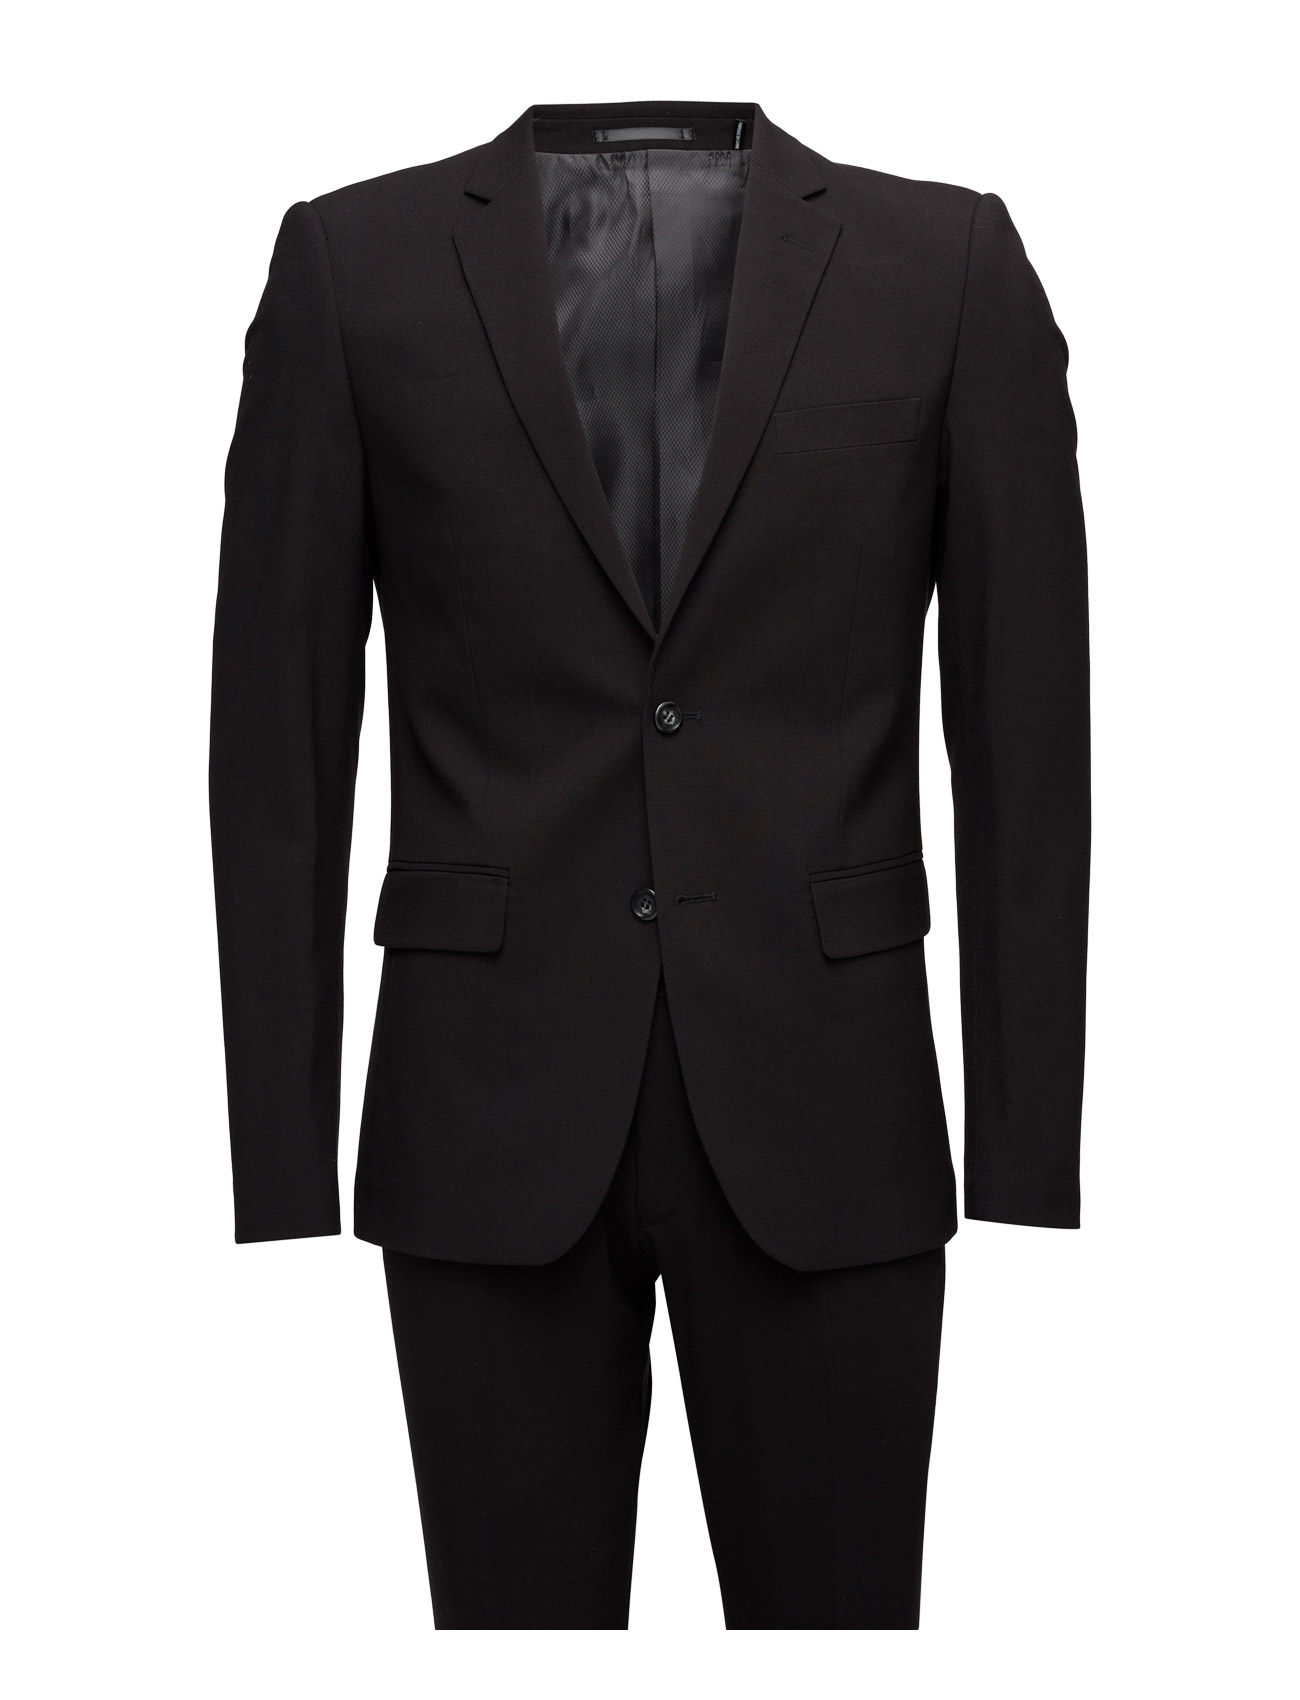 Lindbergh Plain mens suit-blazer + pants